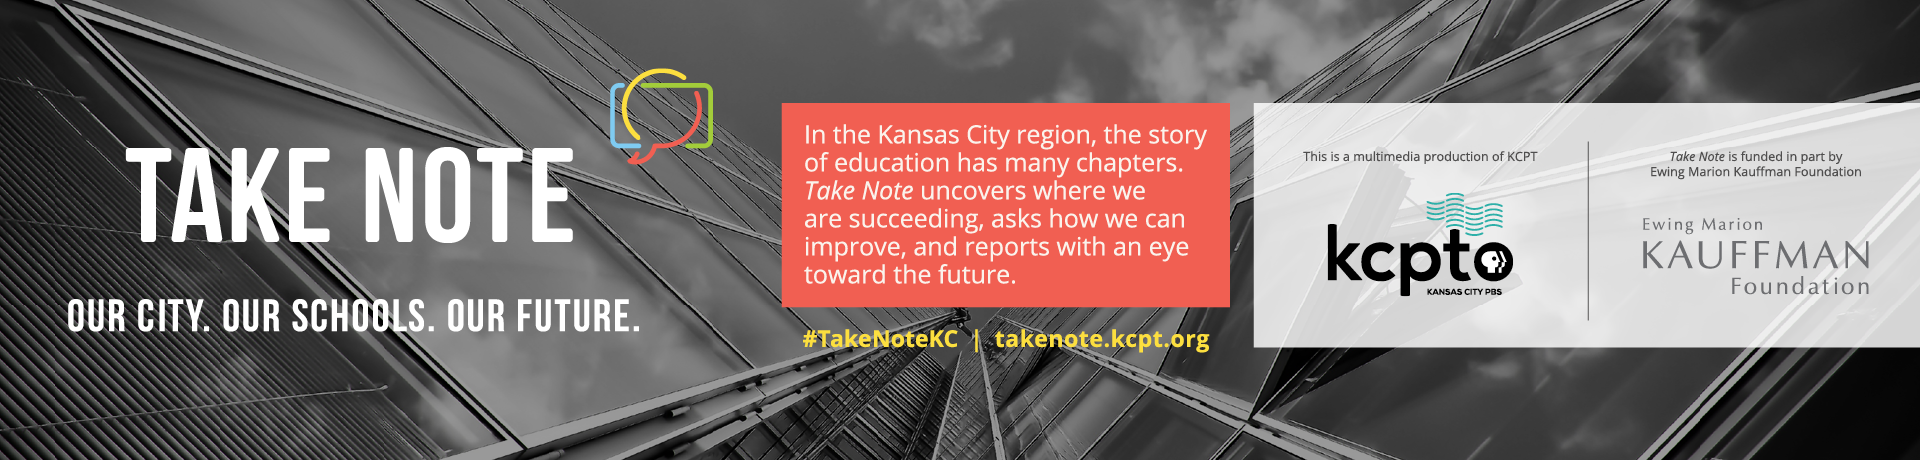 Take Note - Our City. Our Schools. Our Future. In the KC region, the story of education has many chapters. Take Note uncovers where we are succeeding. asks how we can improve and reports with an eye toward the future. KCPT and Kauffman logos.